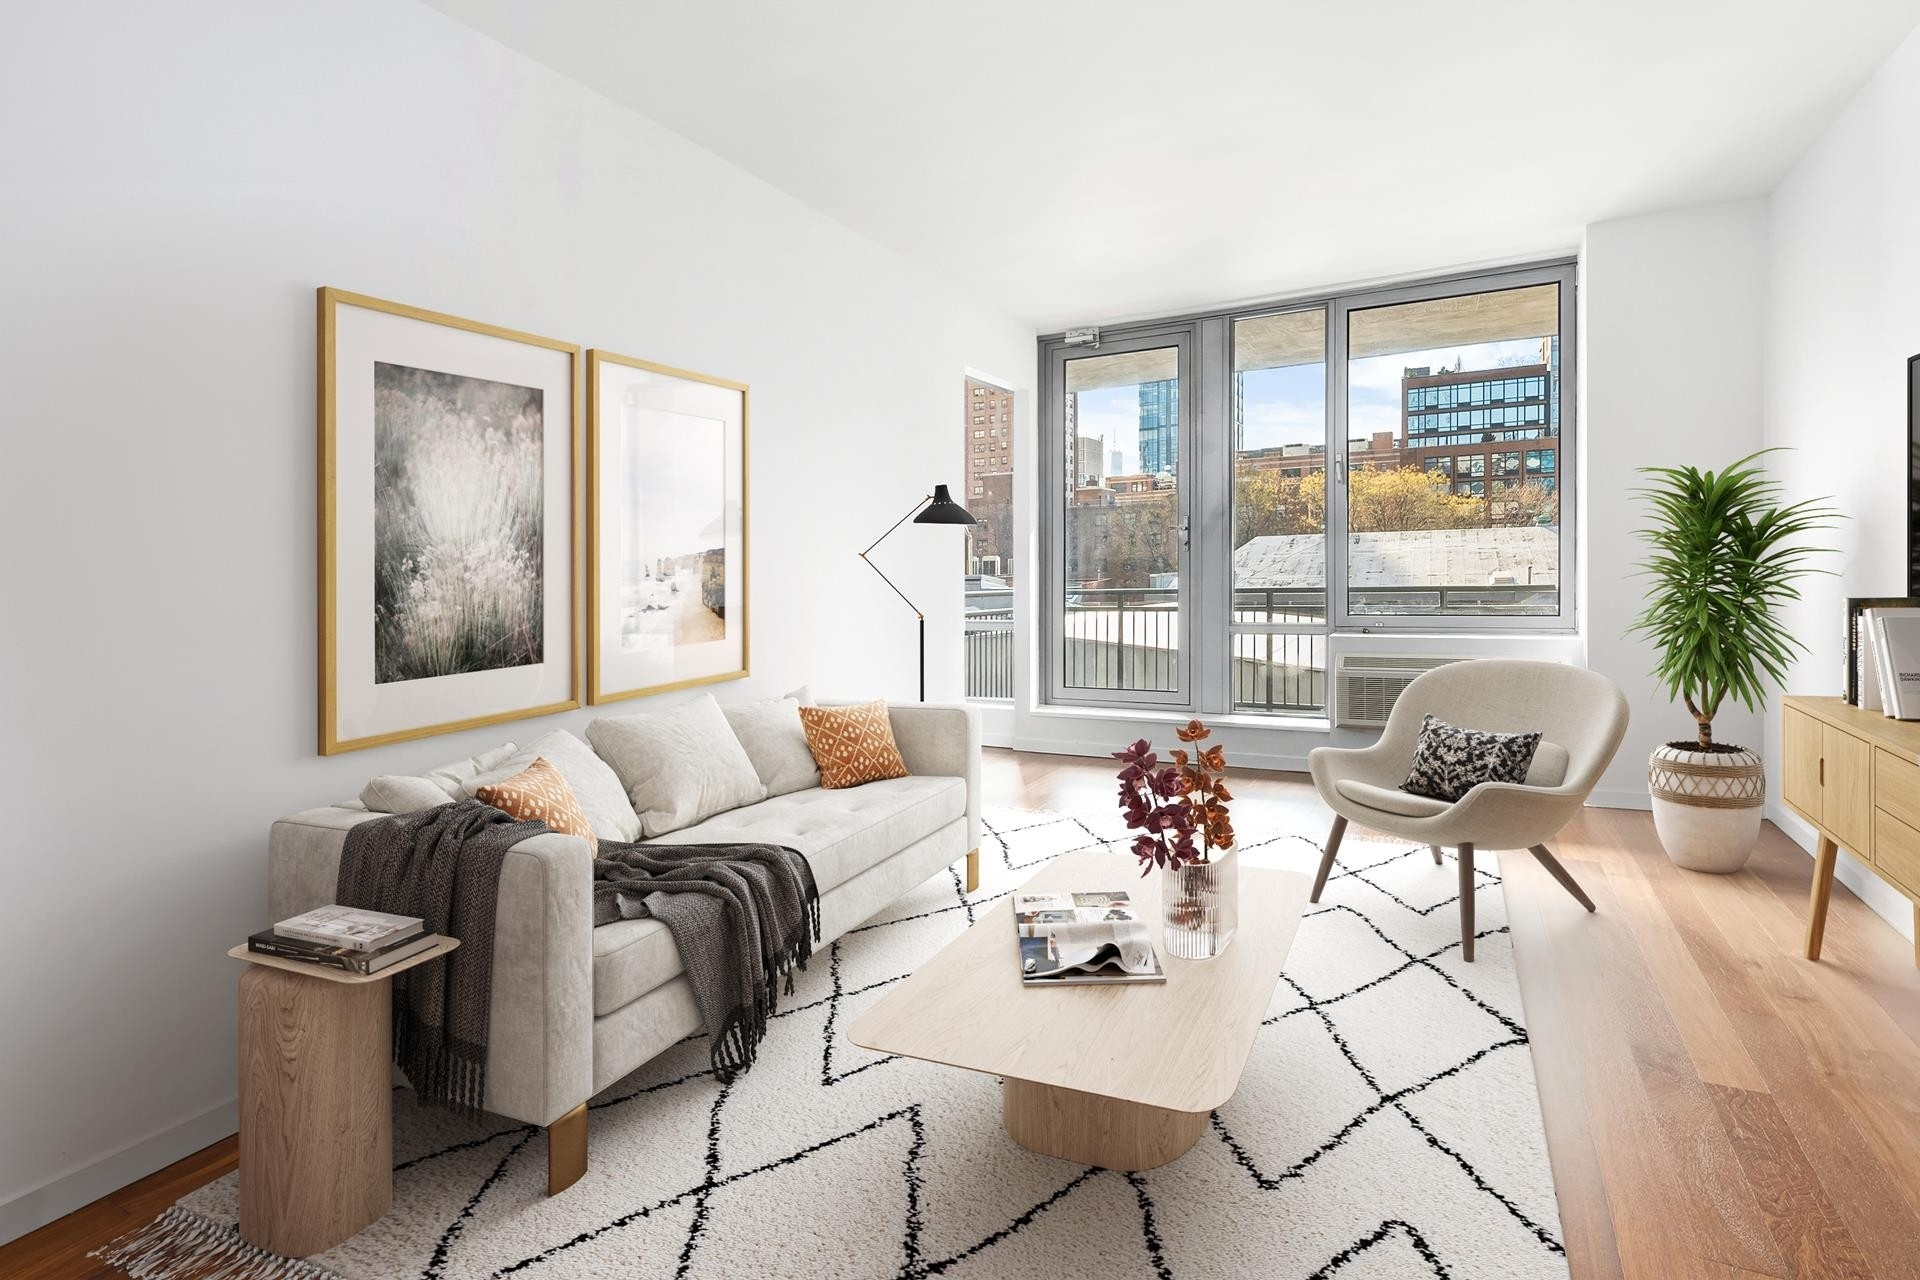 Condominium at 444 West 19th St, 503 Chelsea, New York, NY 10011